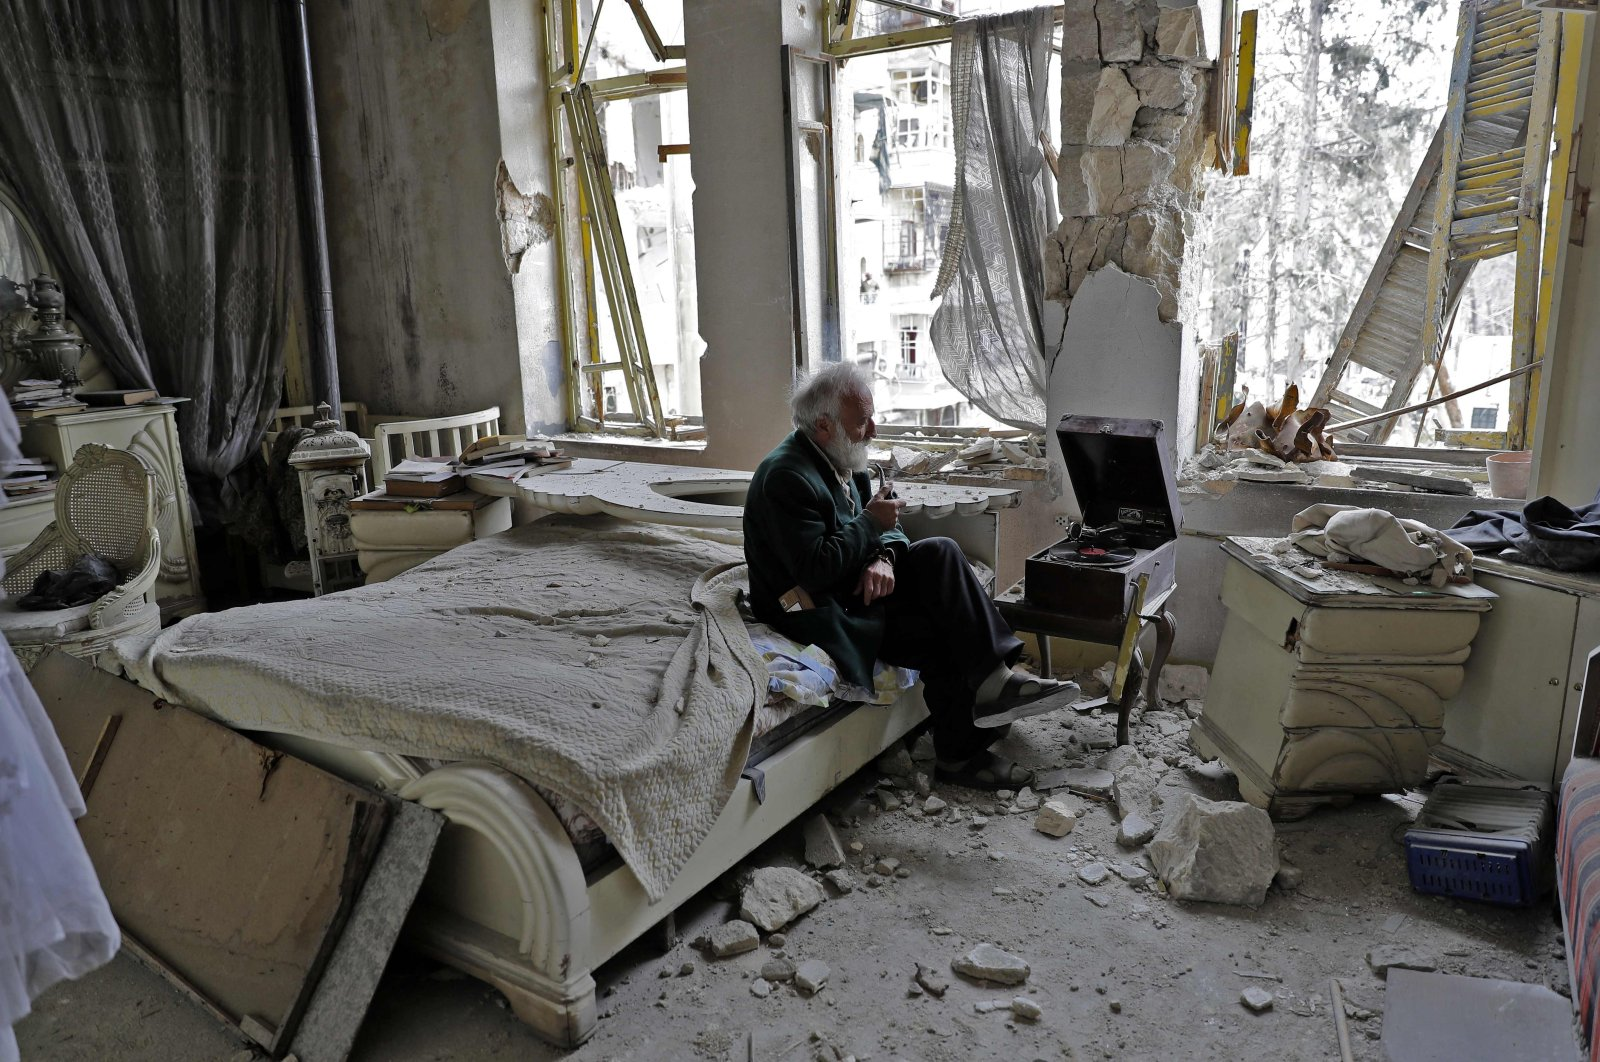 In this file photo, Mohammed Mohiedin Anis, 70, smokes his pipe as he sits in his destroyed bedroom listening to music on his gramophone in Aleppo's formerly opposition-held al-Shaar neighborhood, Syria, March 9, 2017. (AFP Photo)